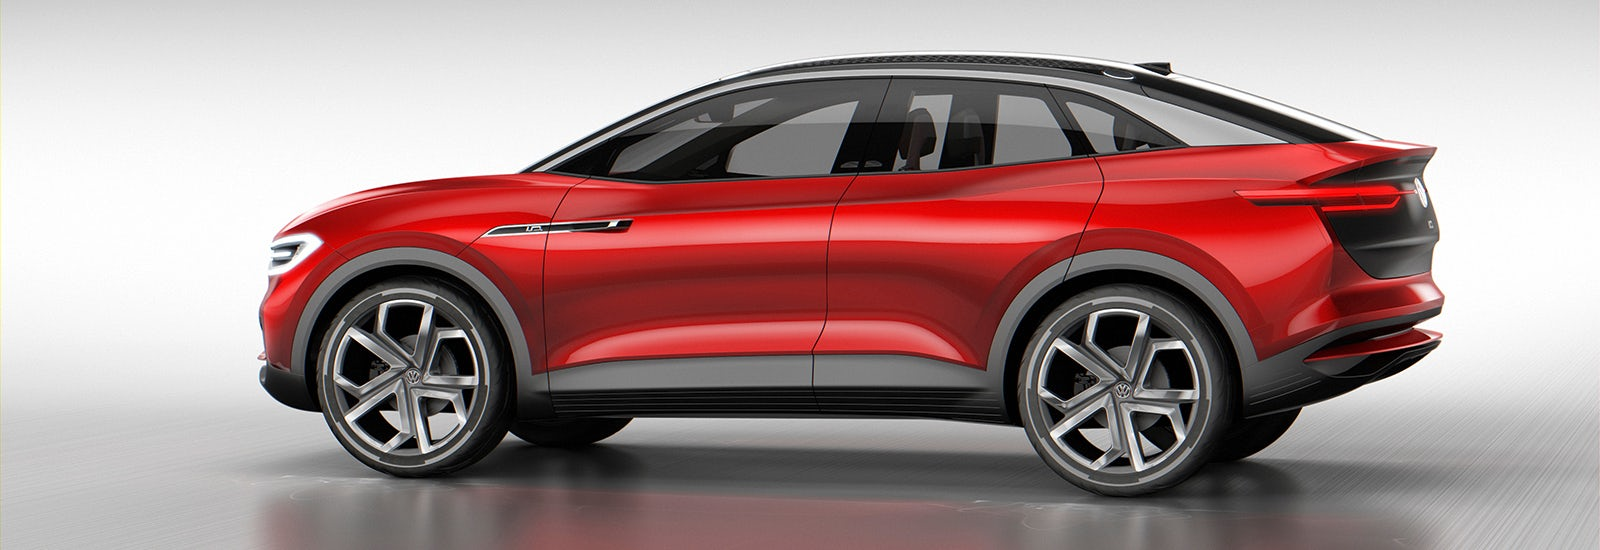 2020 vw id crozz electric suv price specs release date carwow. Black Bedroom Furniture Sets. Home Design Ideas